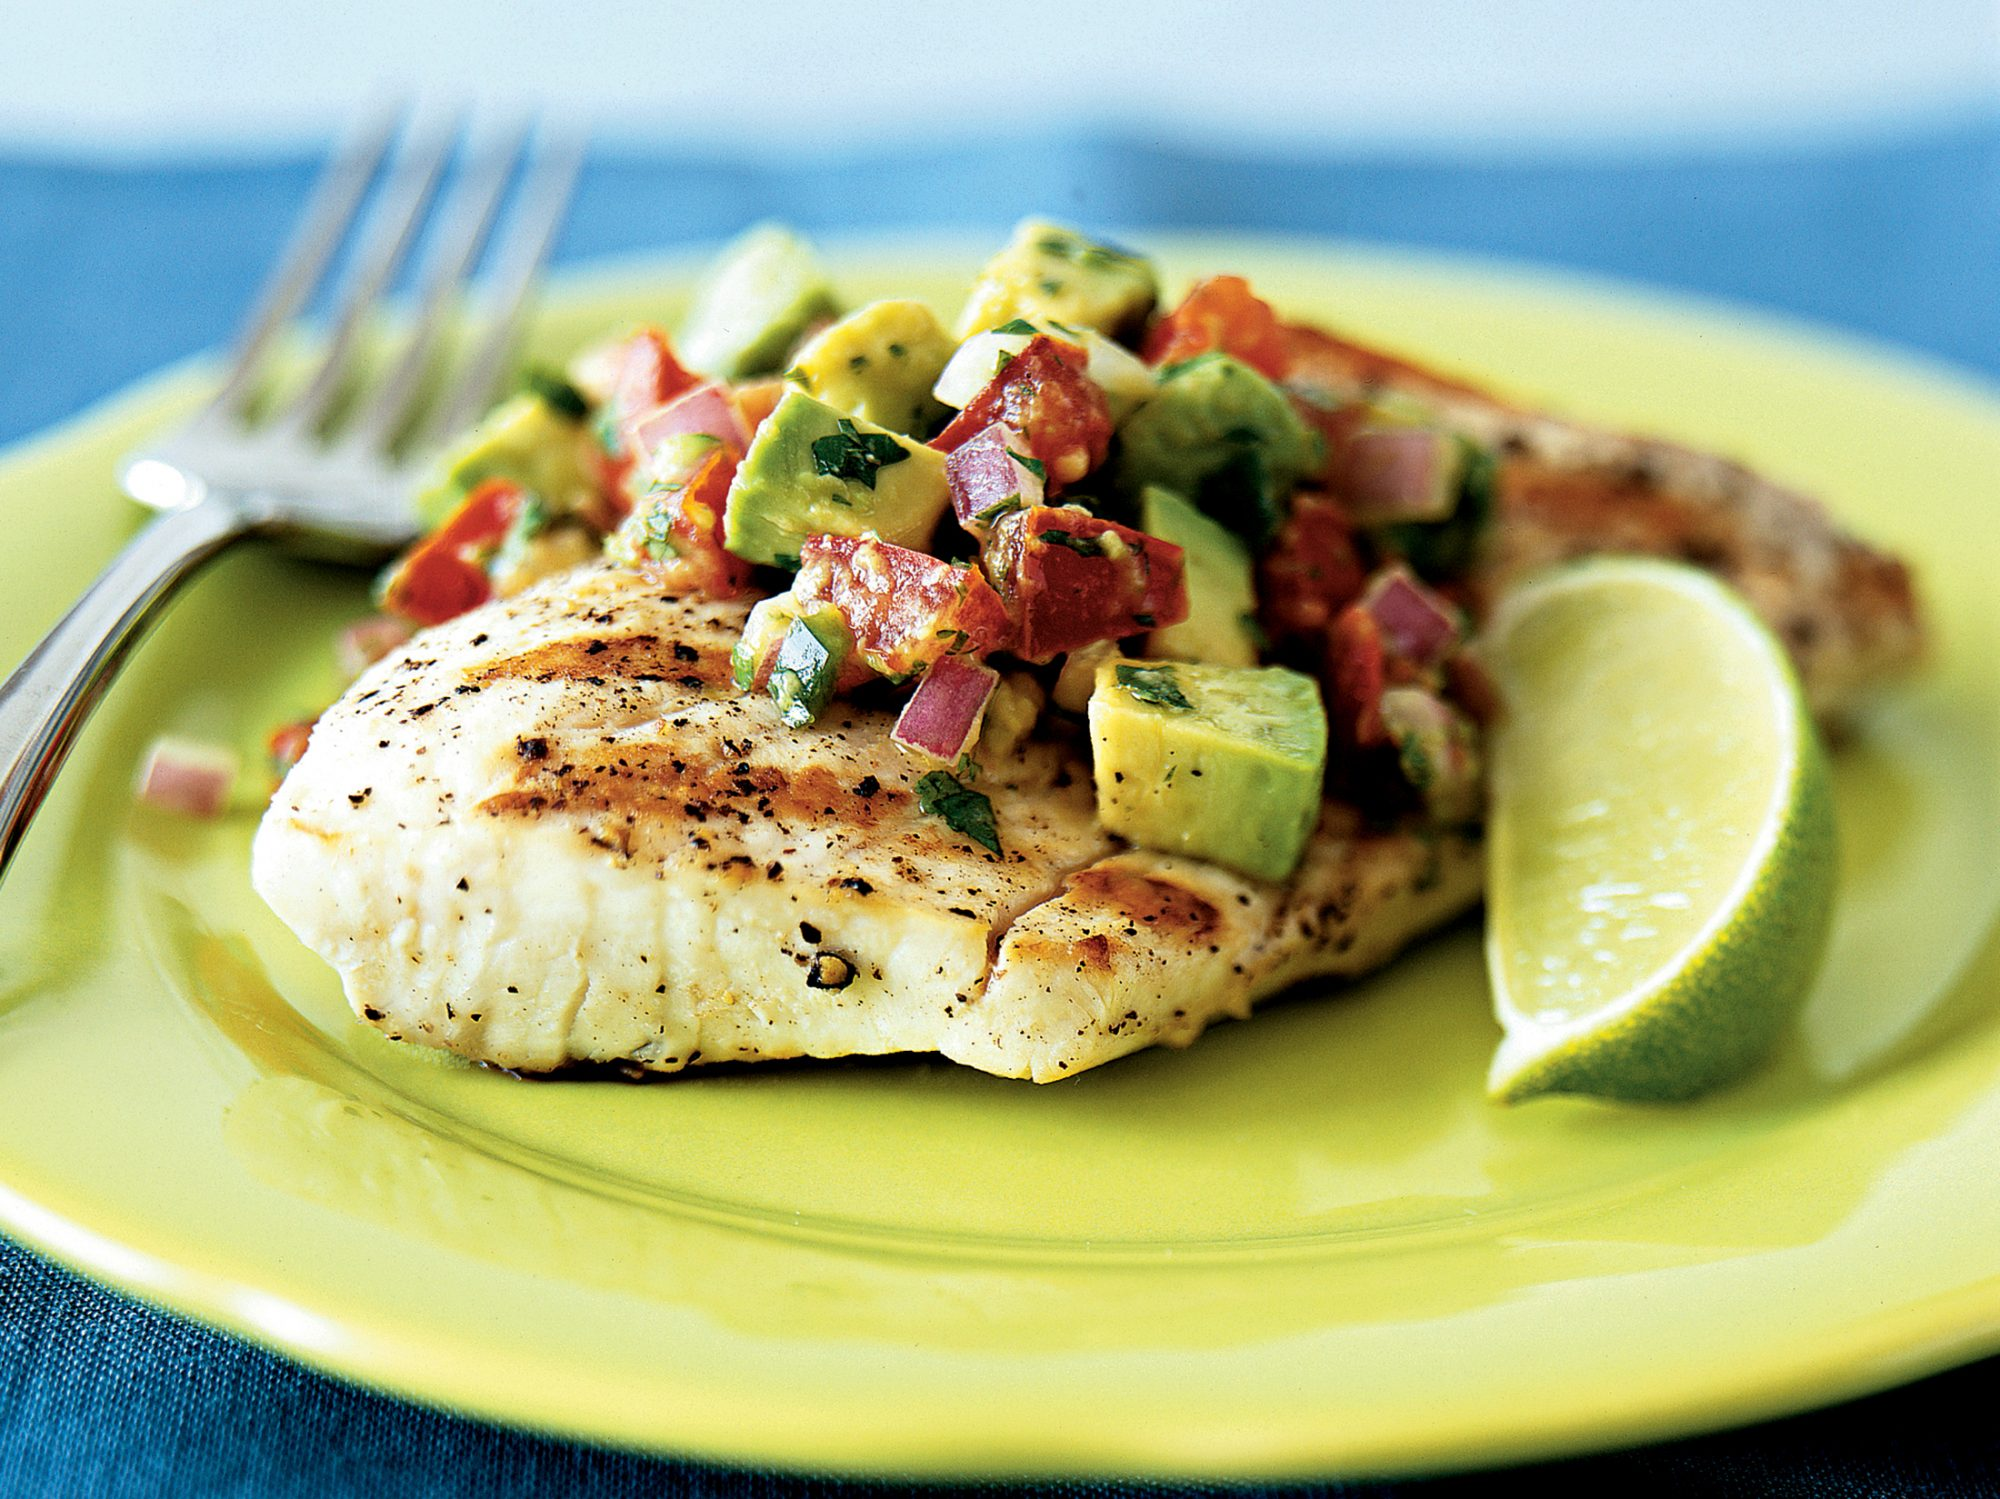 Grilled Mahi Mahi With Avocado-Chile Salsa